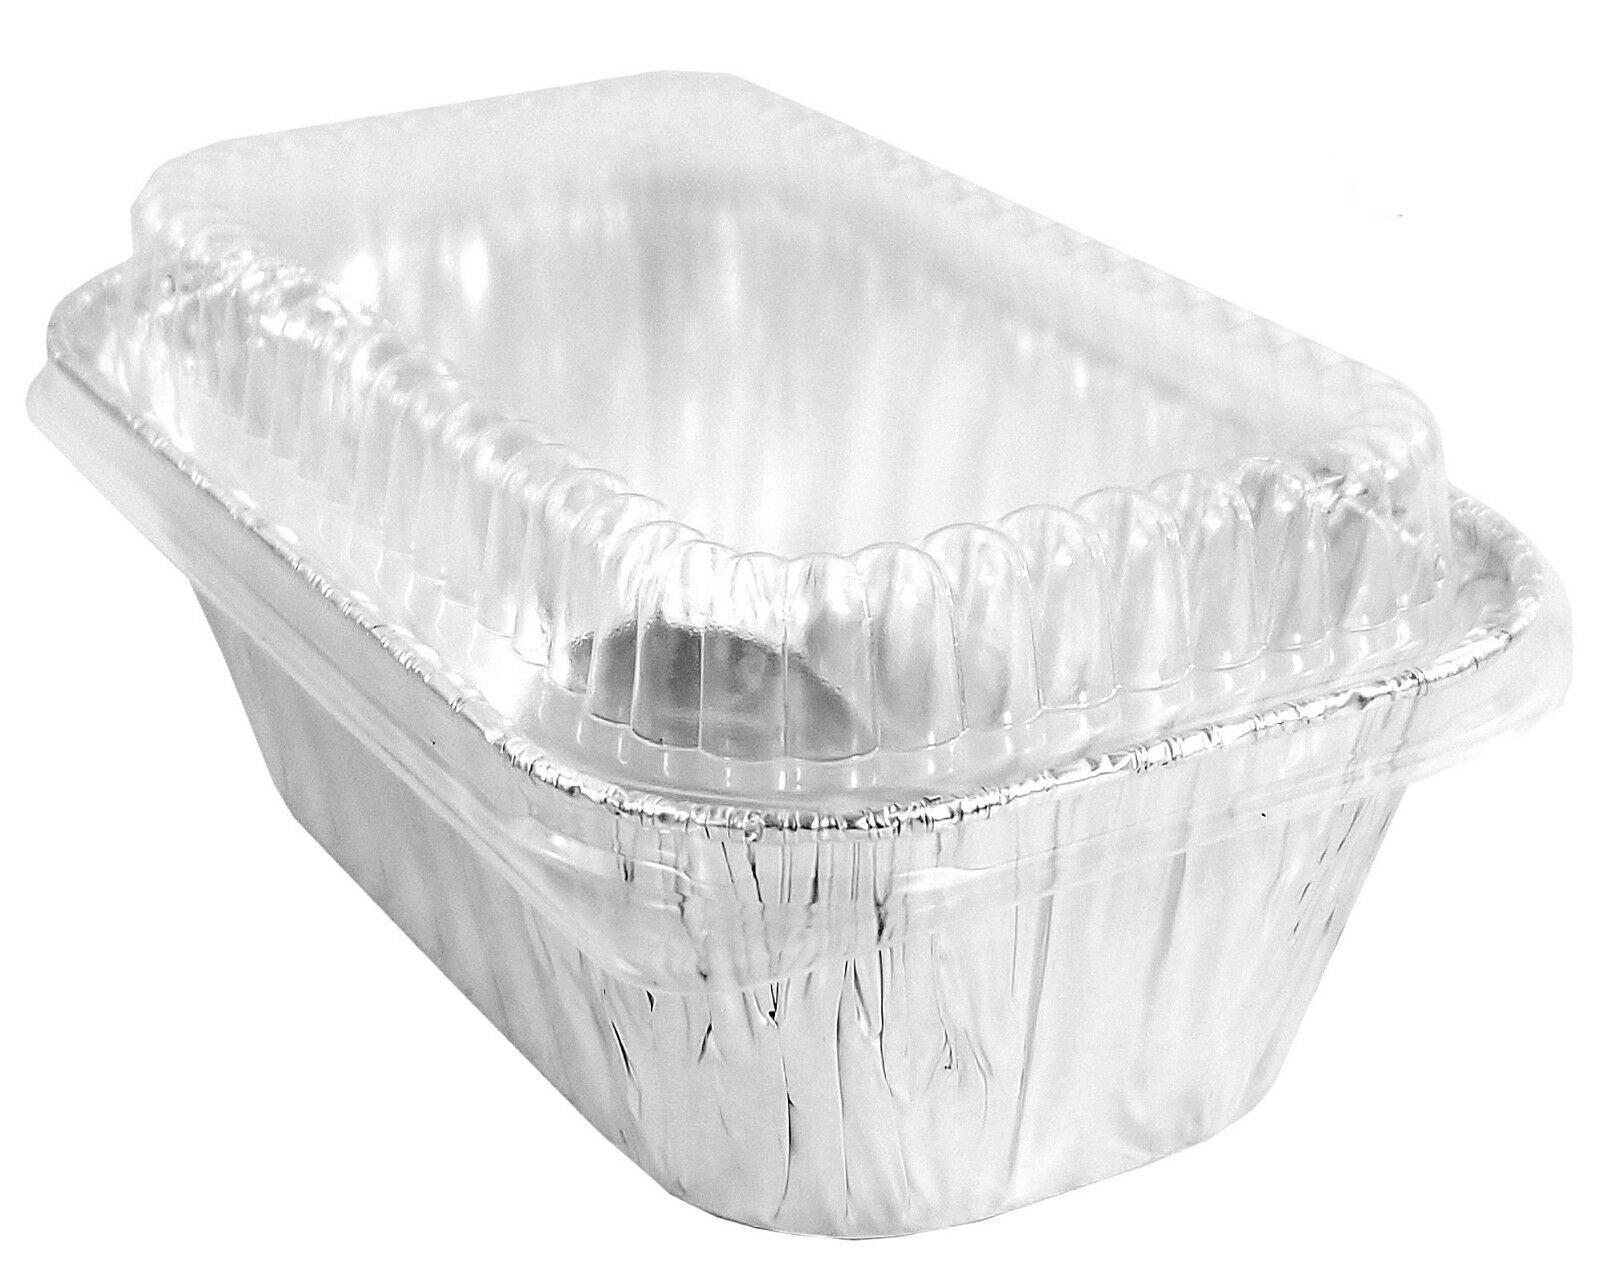 25//PK Aluminum 1 lb Mini Loaf Pans w Clear Dome Lids Made in USA by Handi-Foil